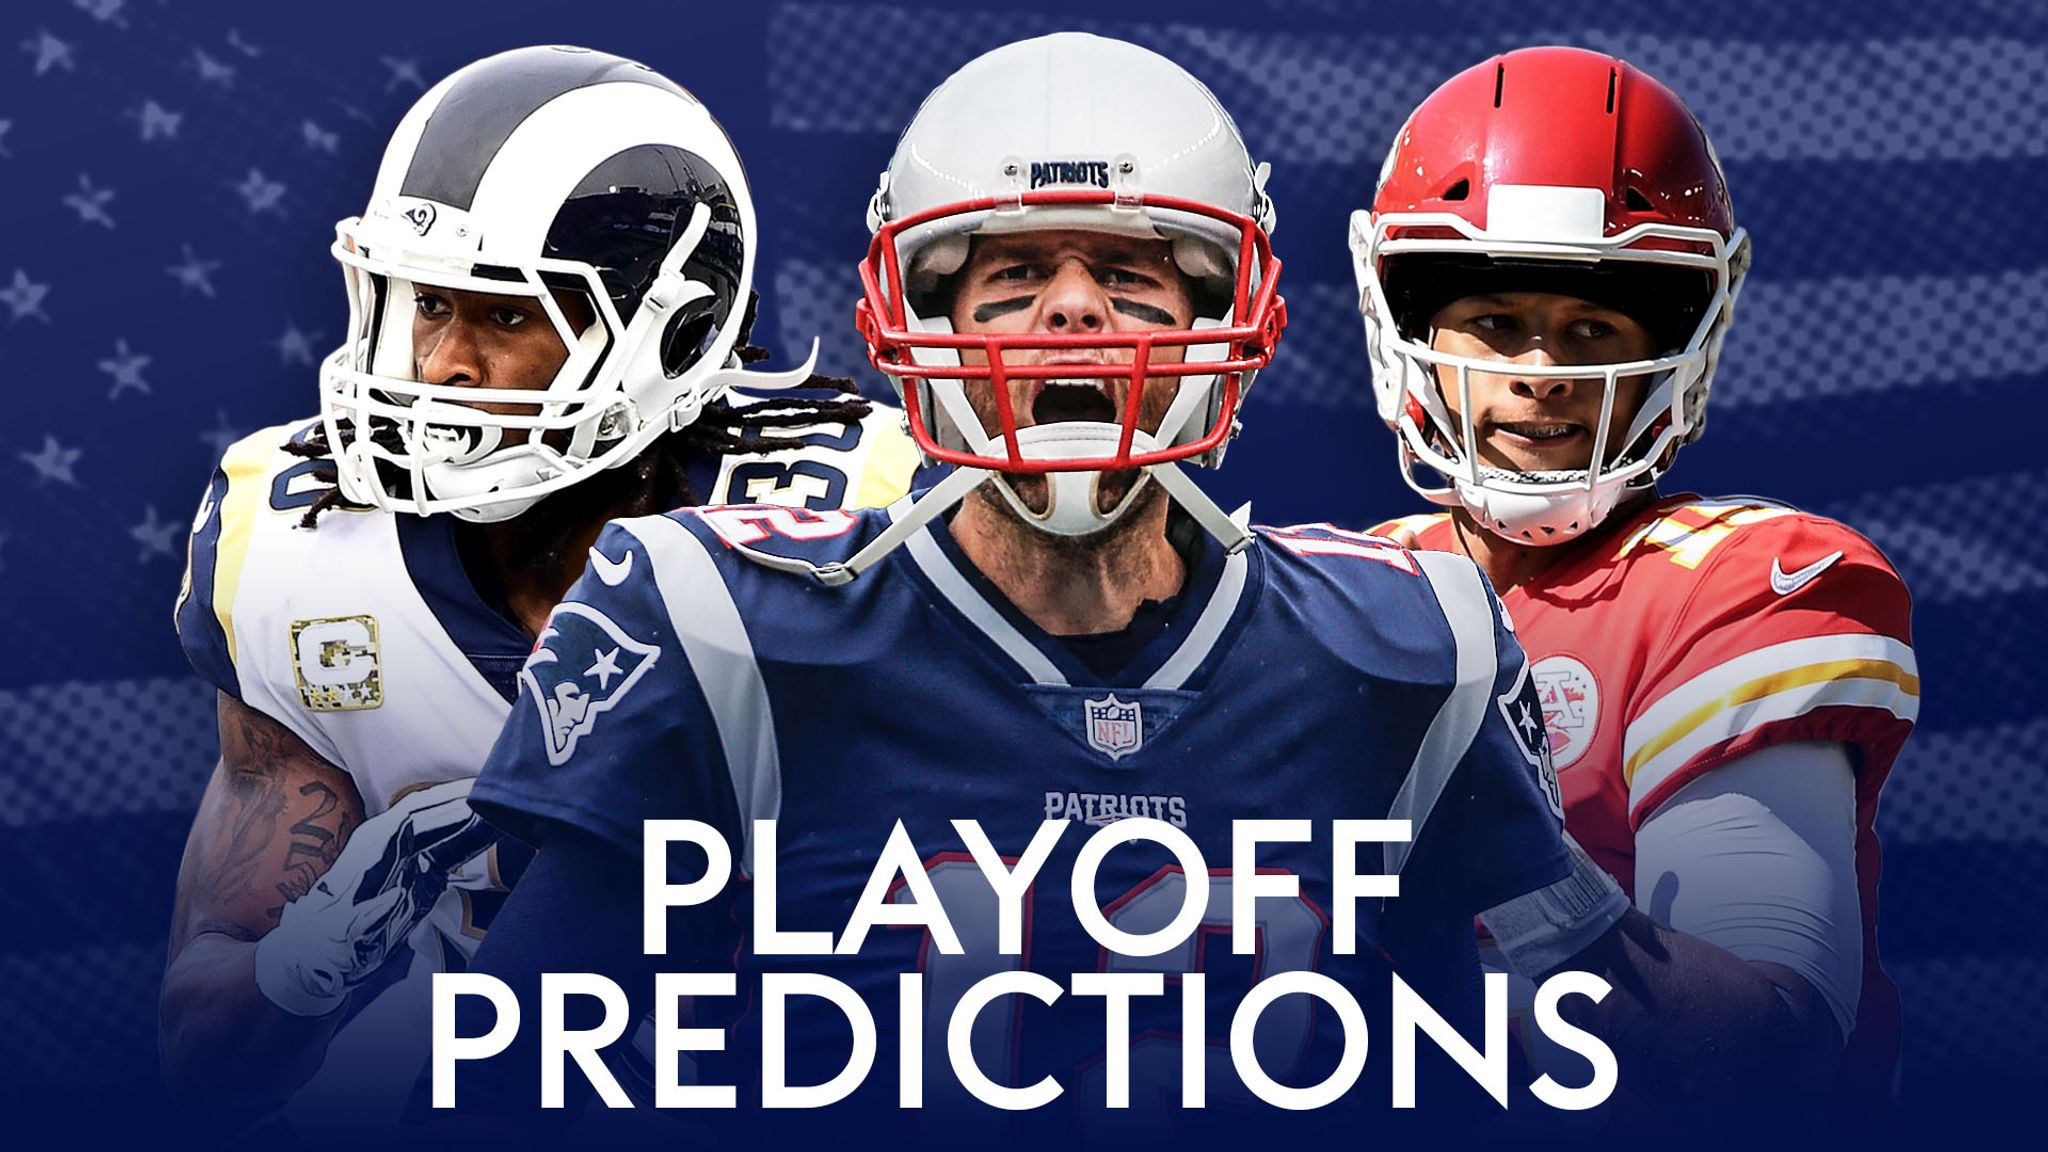 NFL Conference Championship predictions: Neil Reynolds and